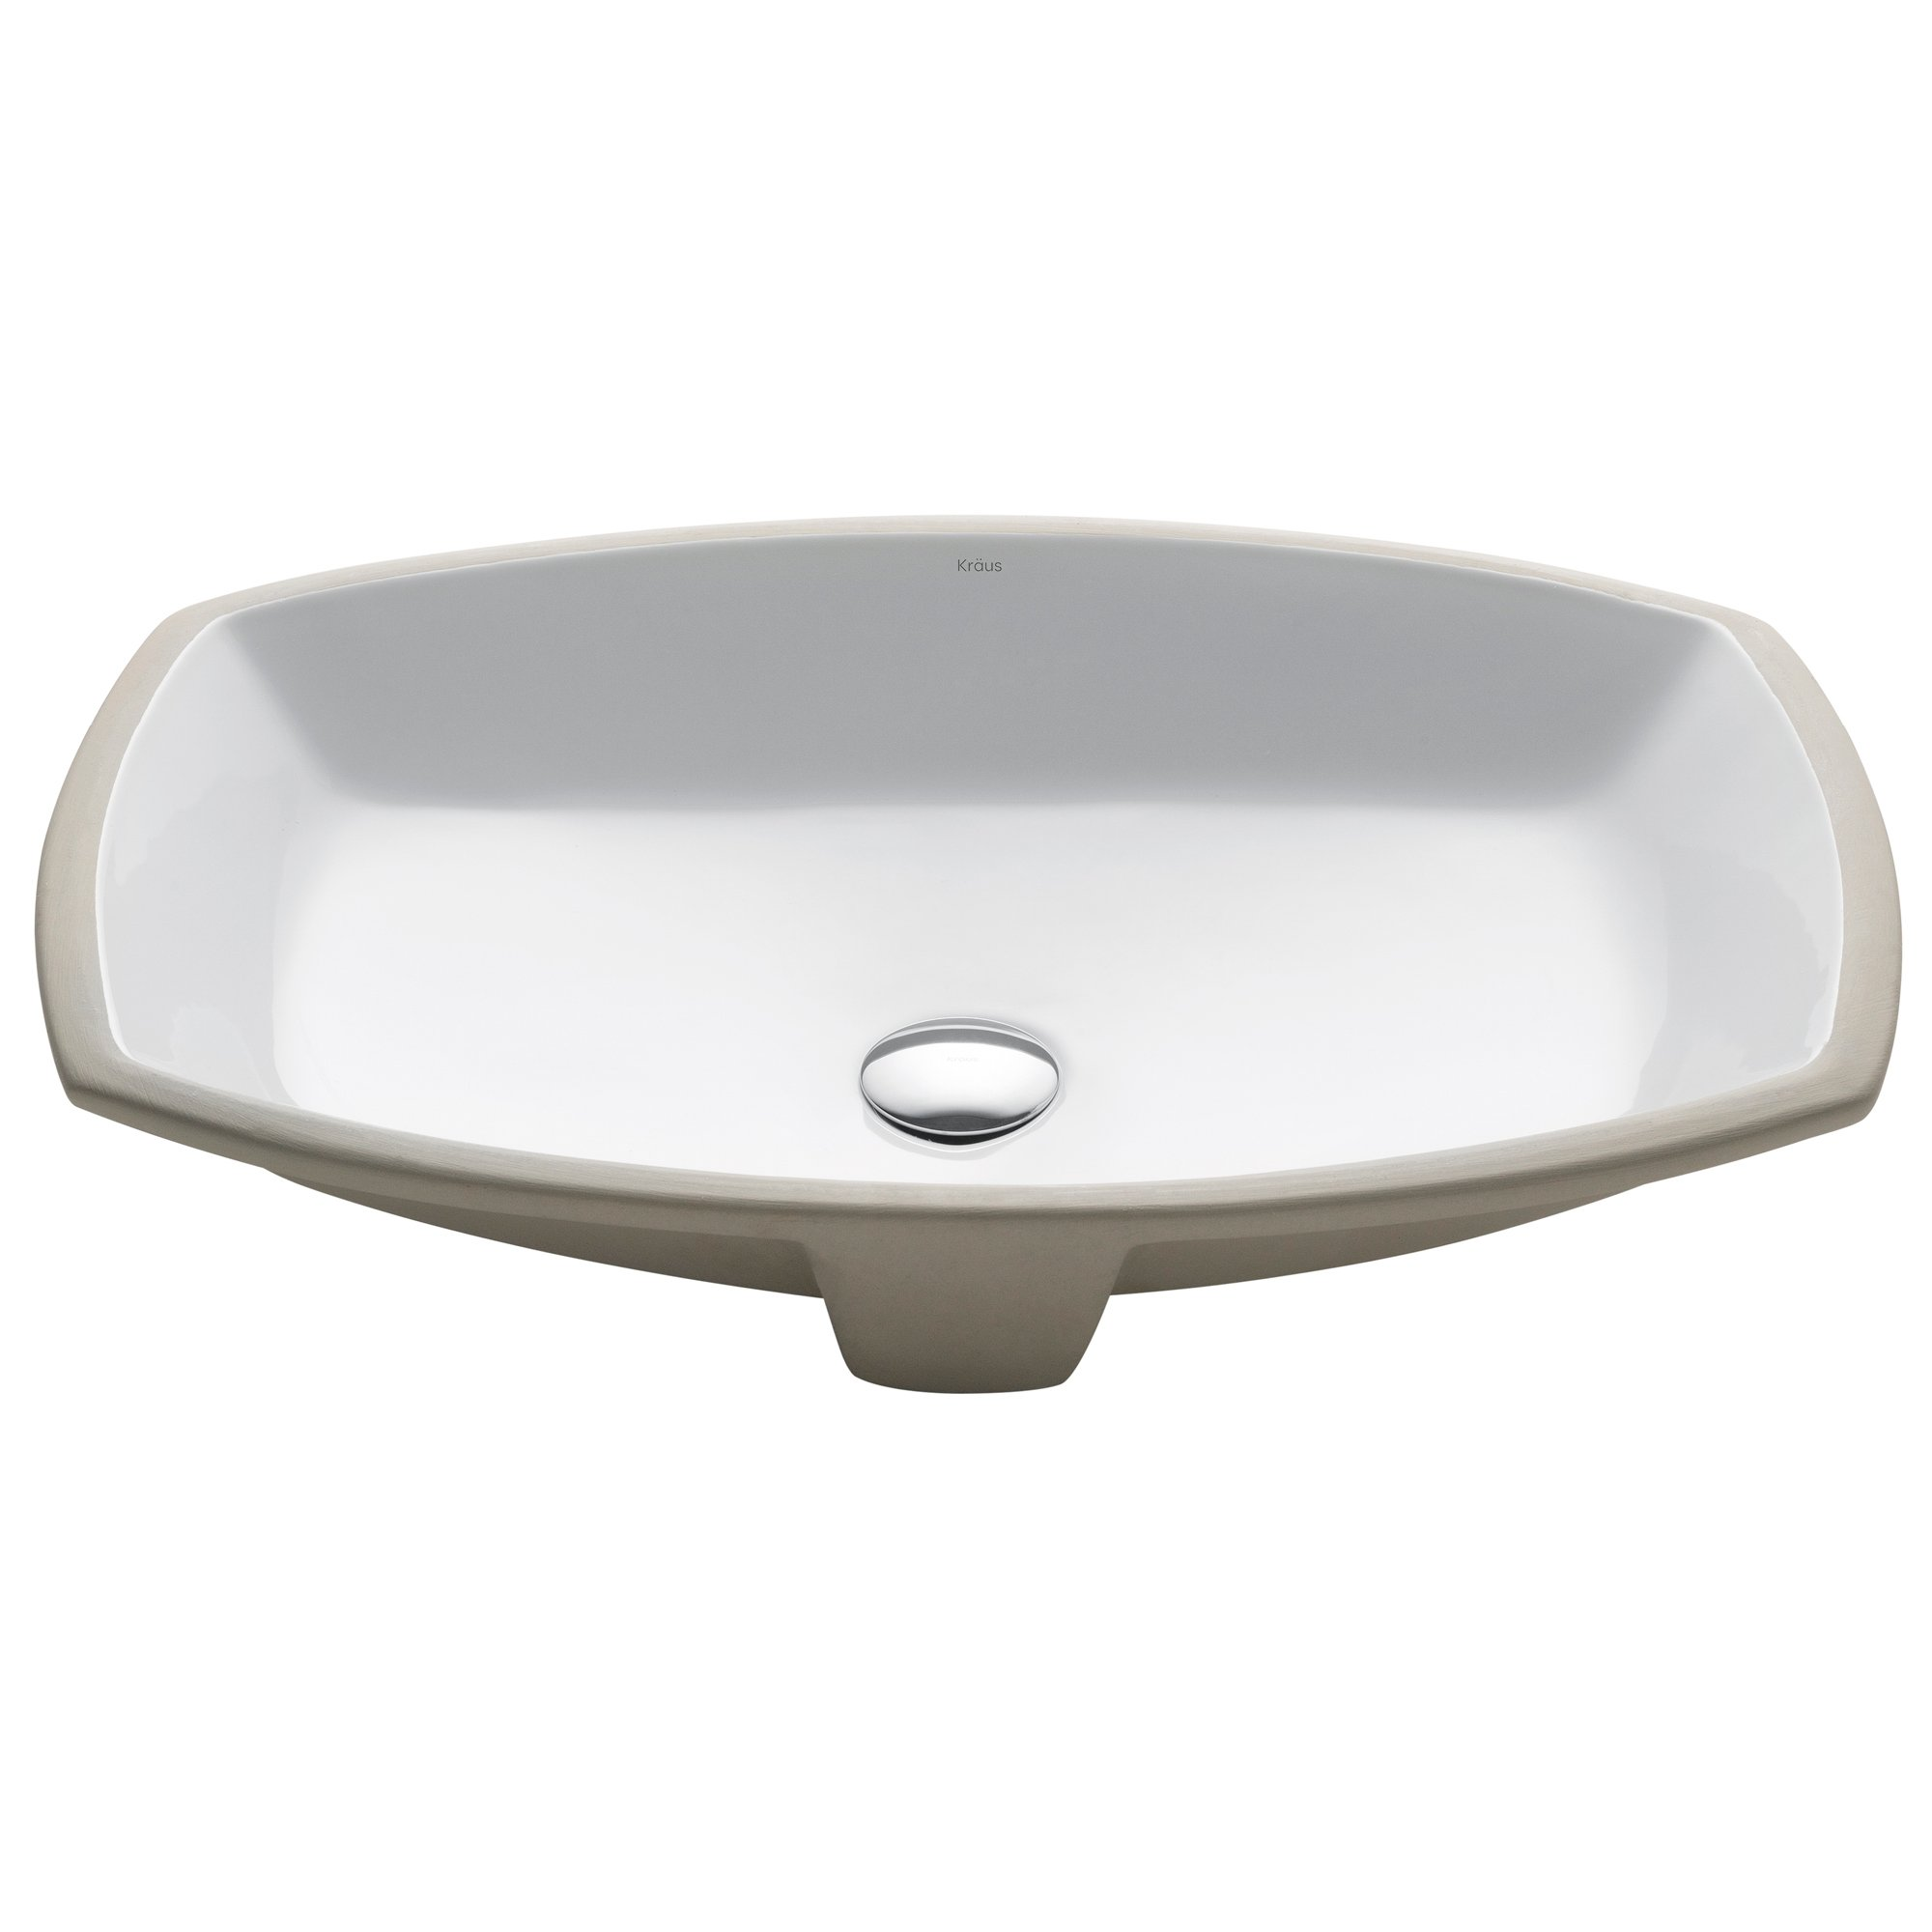 KRAUS Elavo 24-Inch Rectangular Undermount Porcelain Ceramic Bathroom Sink in White with Overflow, KCU-261